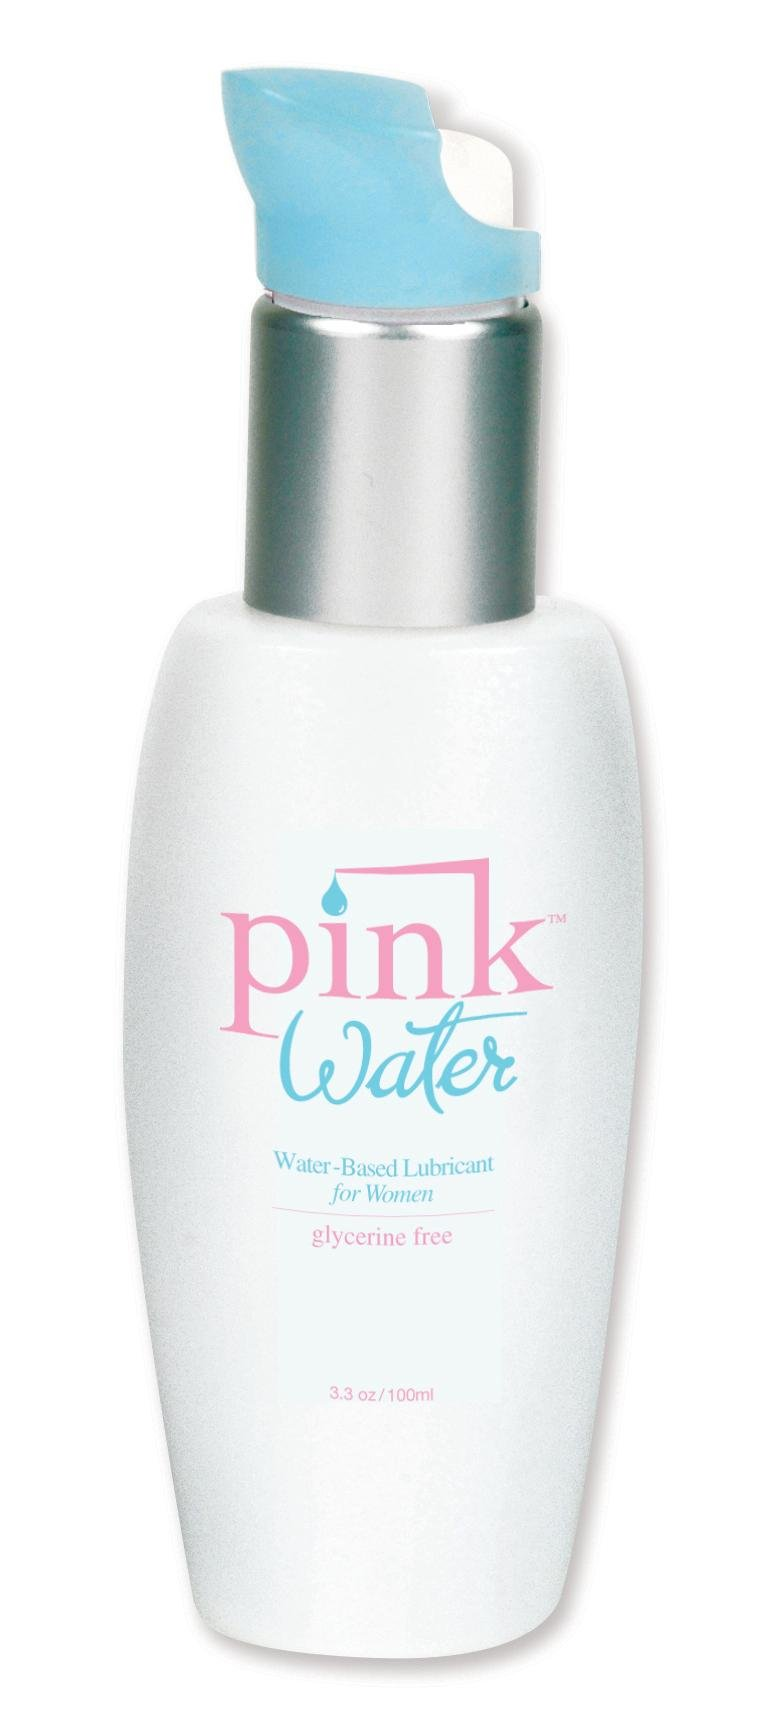 Pink Water, Water-Based Lubricant for Women, with Aloe Vera, Glycerin & Paraben Free, 3.3 Fl Oz (100 Ml)